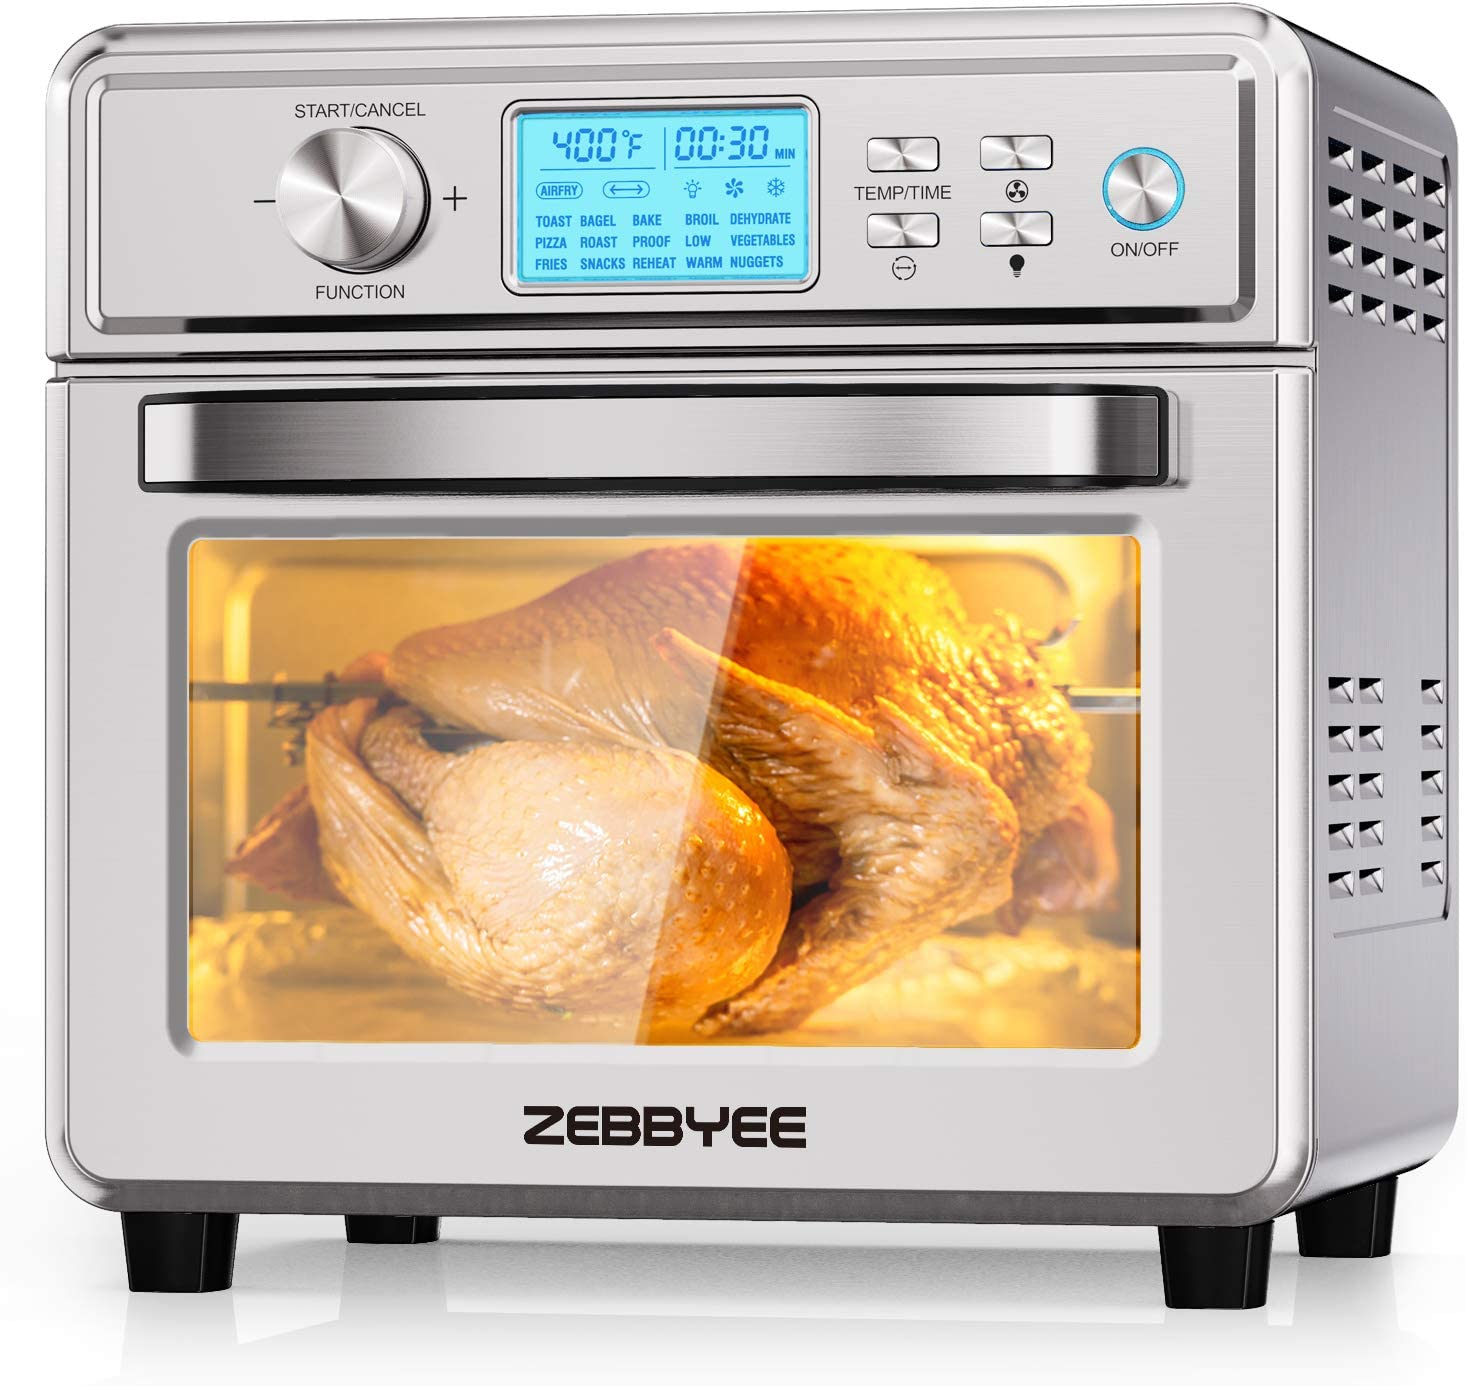 Zebbyee 22QT Free shipping on posting reviews Air Fryer Oven Brand new Convection 16-in-1 1700W Toas